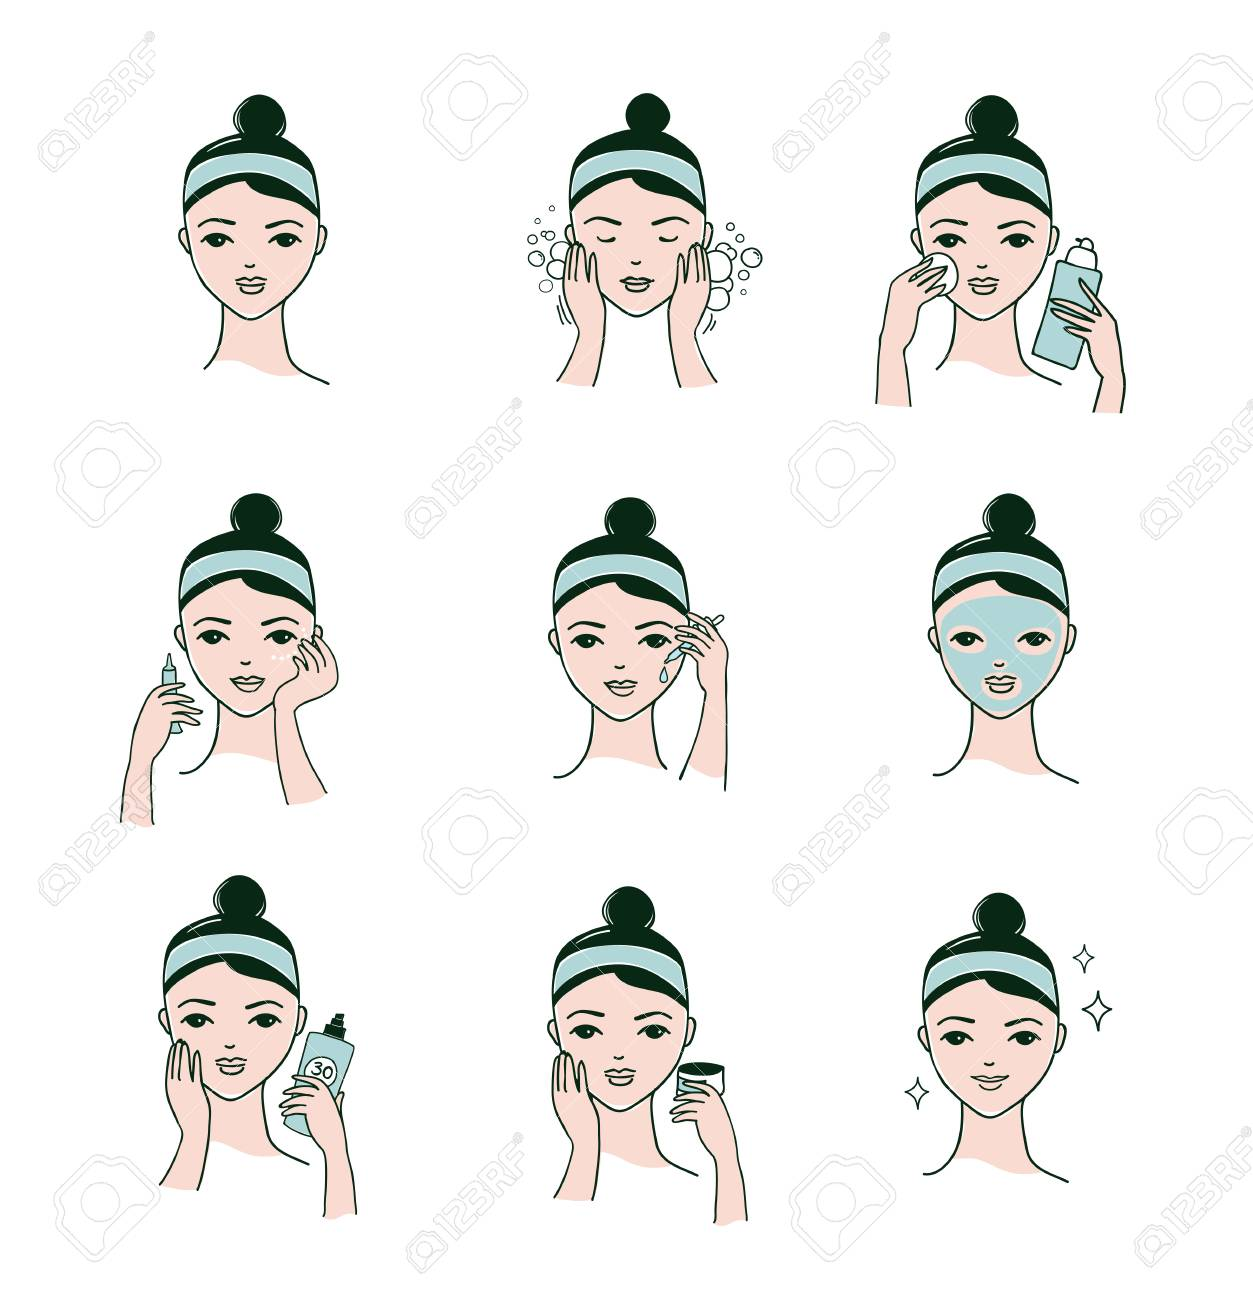 Skin Care Routine Simple Woman Face With A Different Facial Royalty Free Cliparts Vectors And Stock Illustration Image 90315594